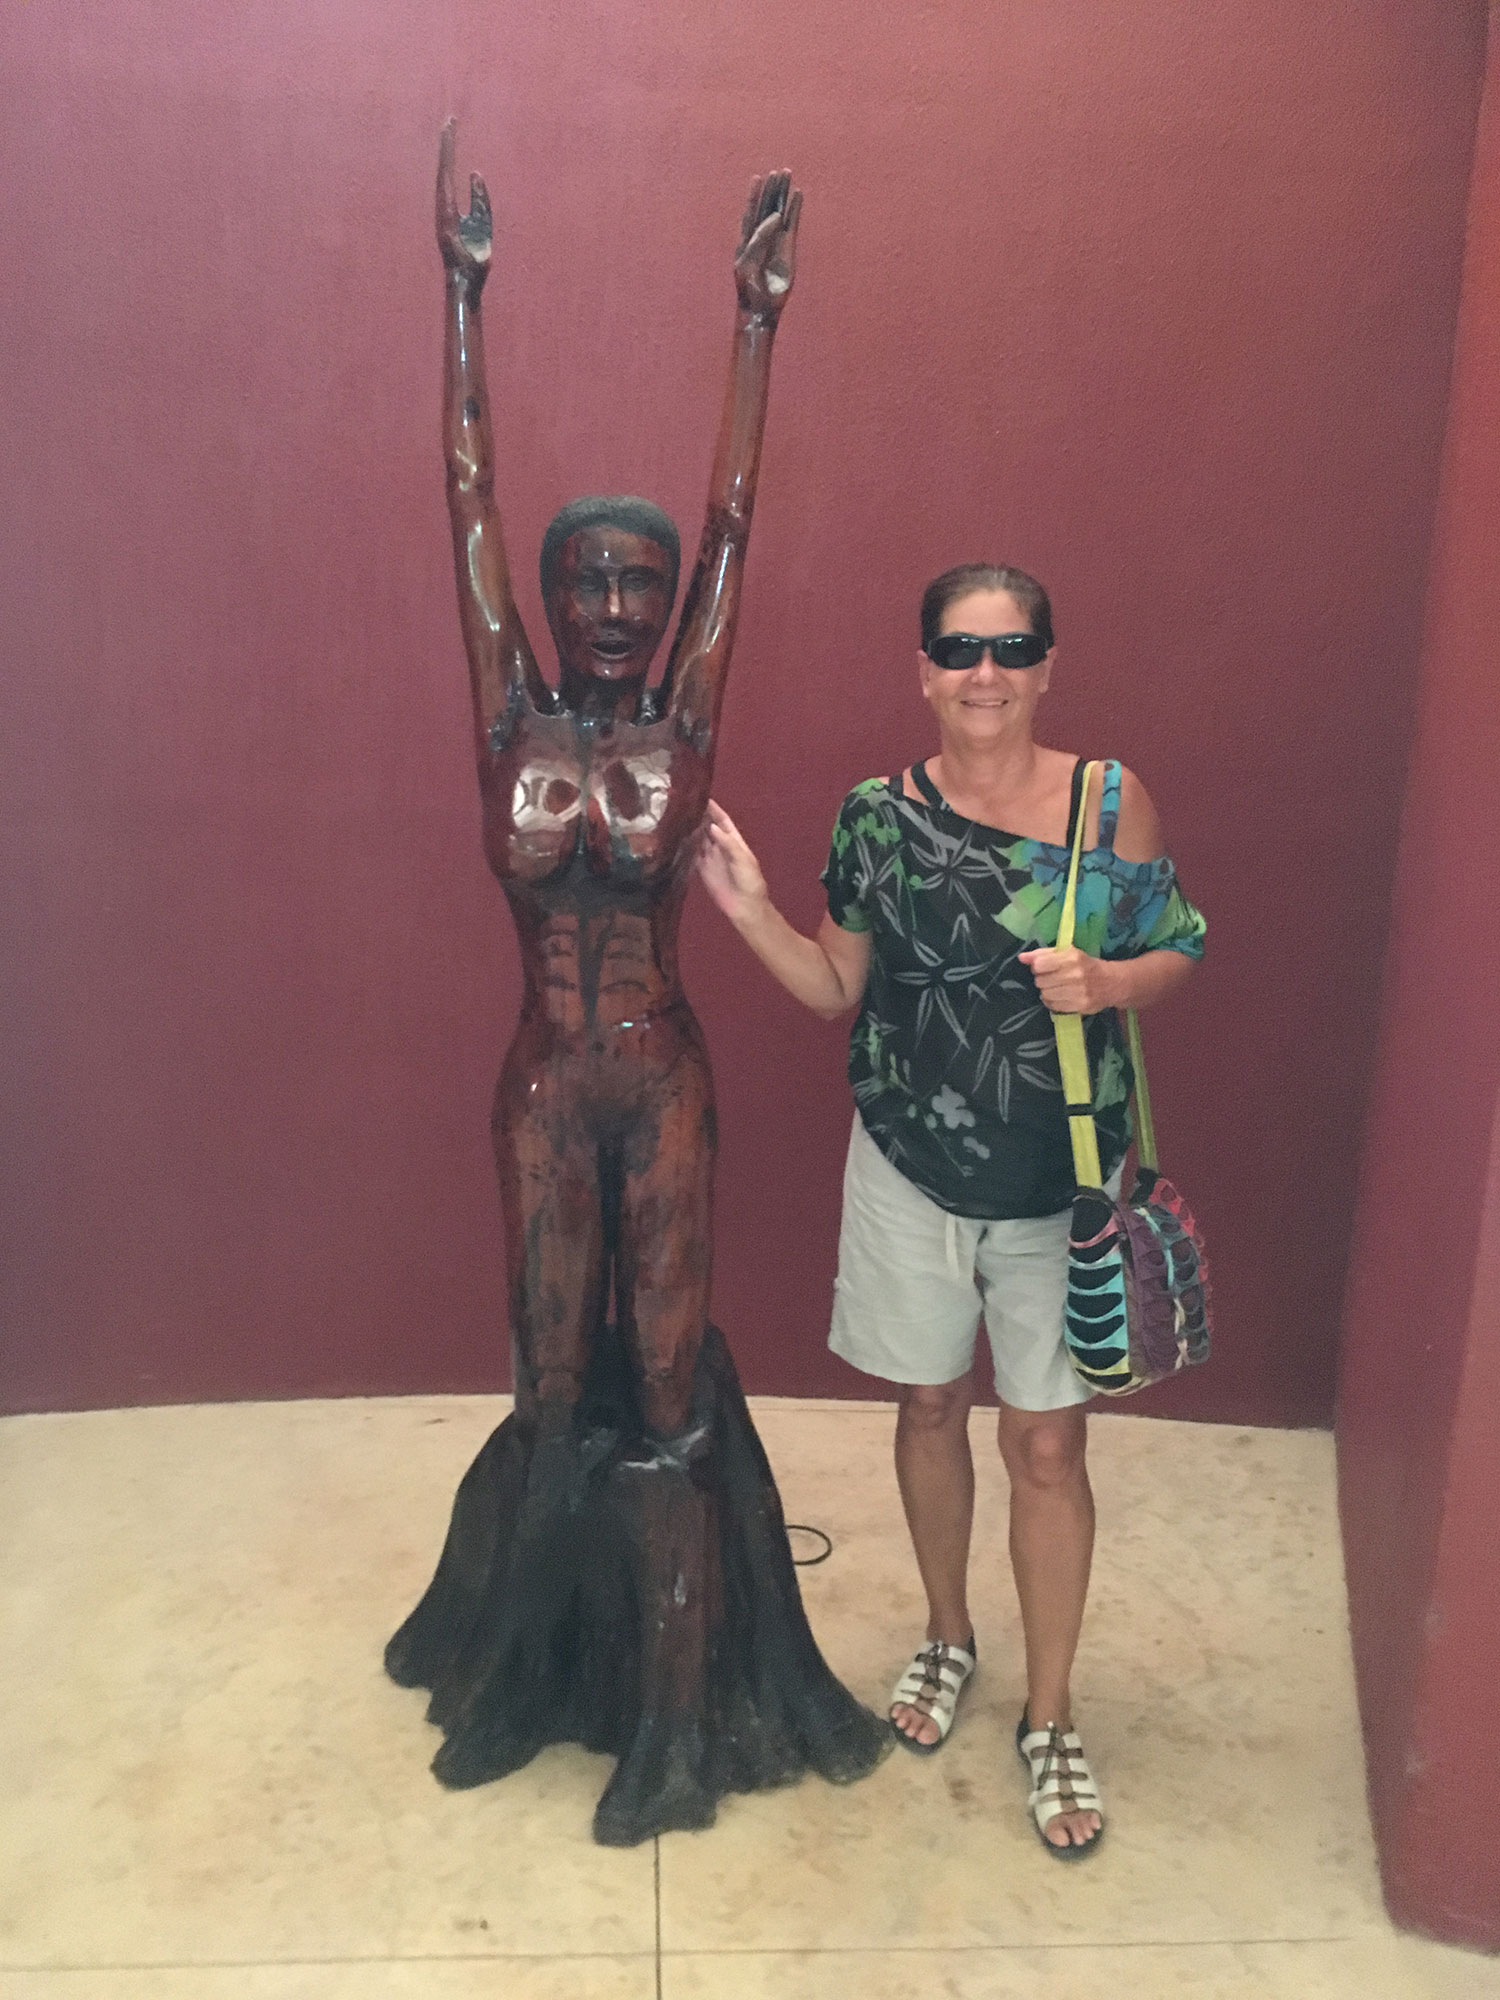 With the World Tree lady at the cave museum.